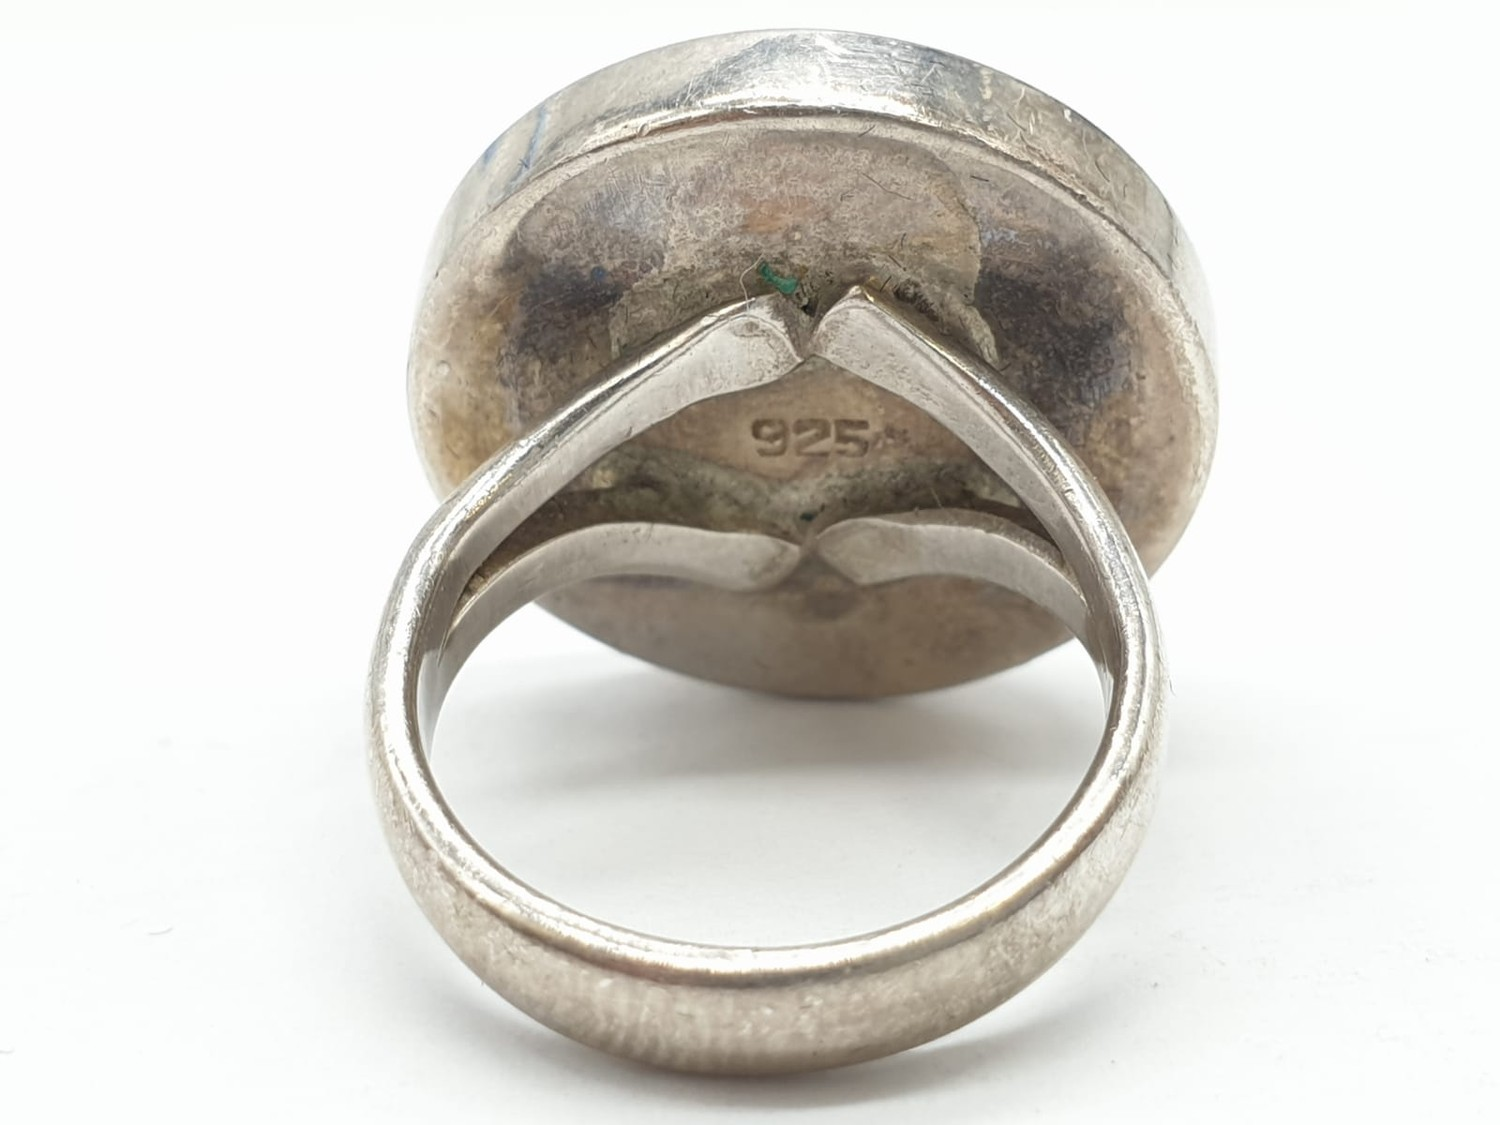 Silver ring having large circular Agate stone to top. Size L. - Image 5 of 6